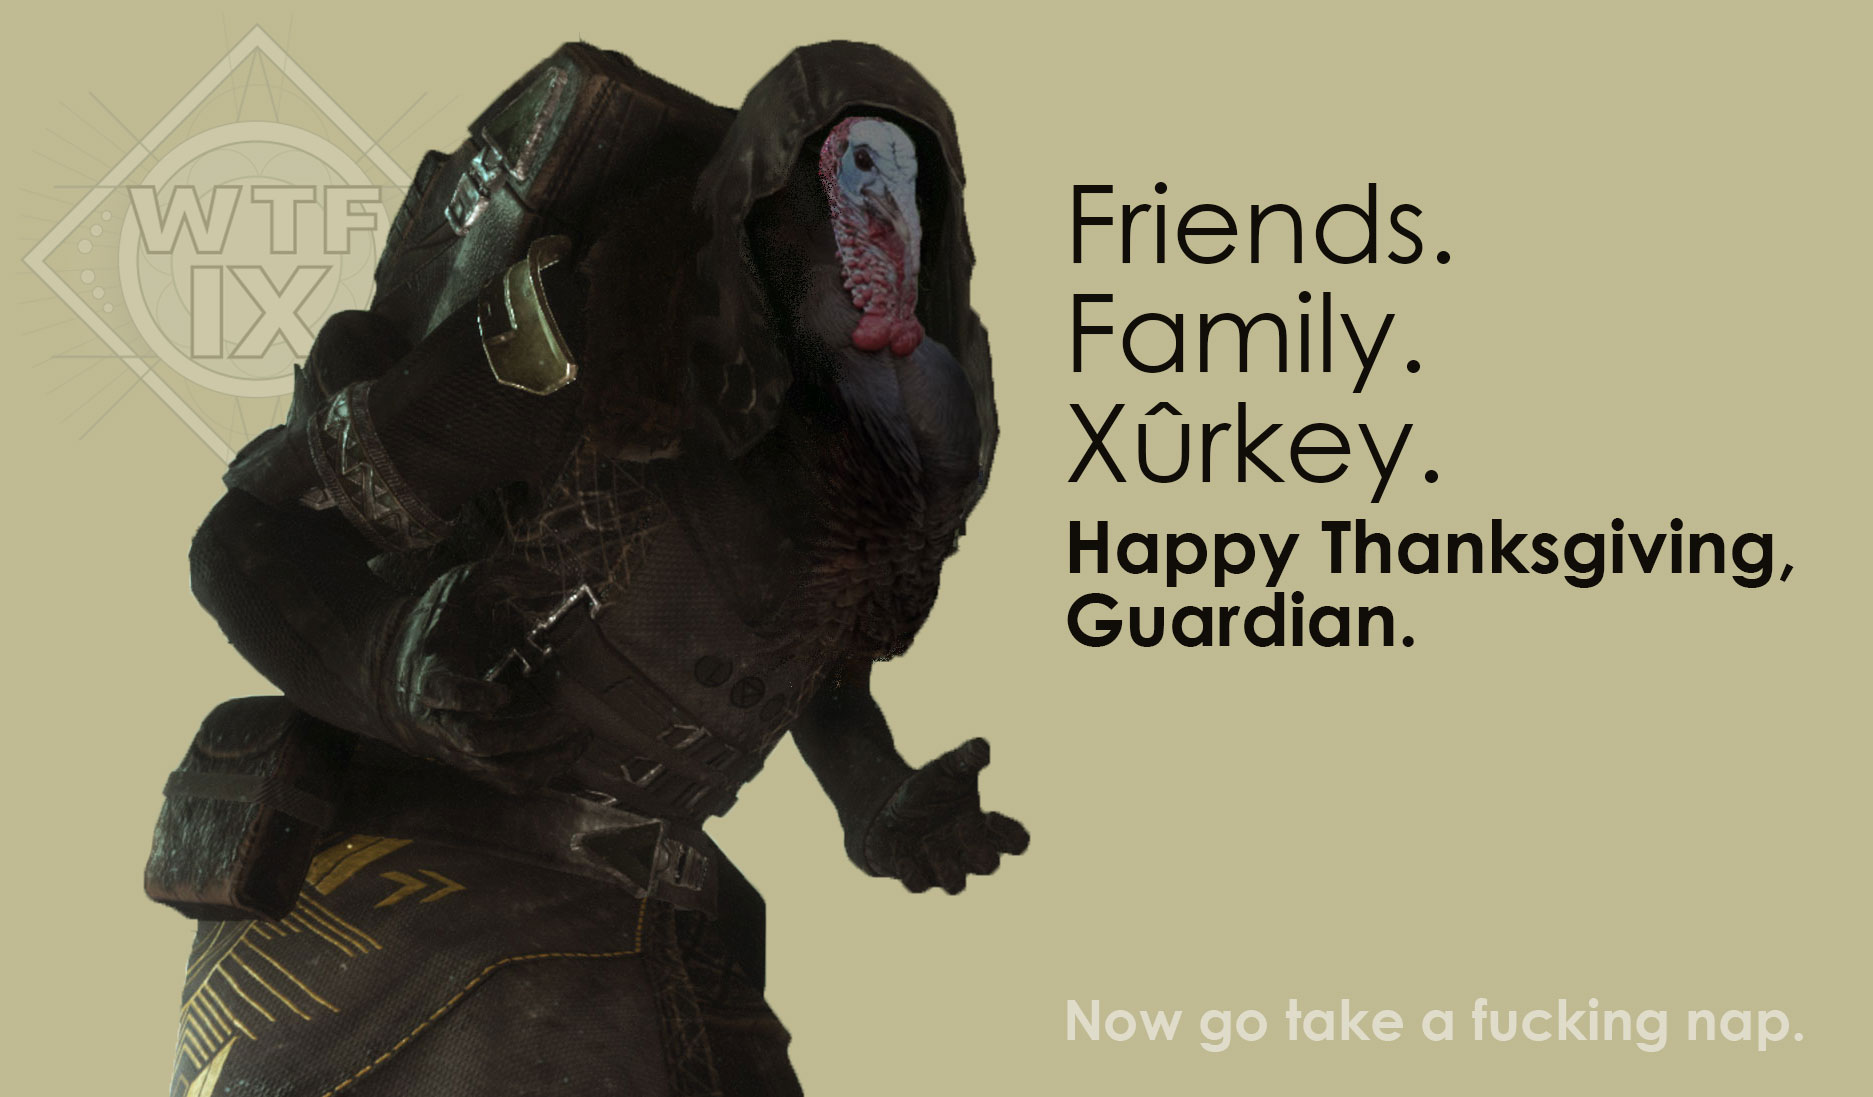 Friends. Family. Xûrkey. Happy Thanksgiving, Gaurdian. Now go take a fucking nap